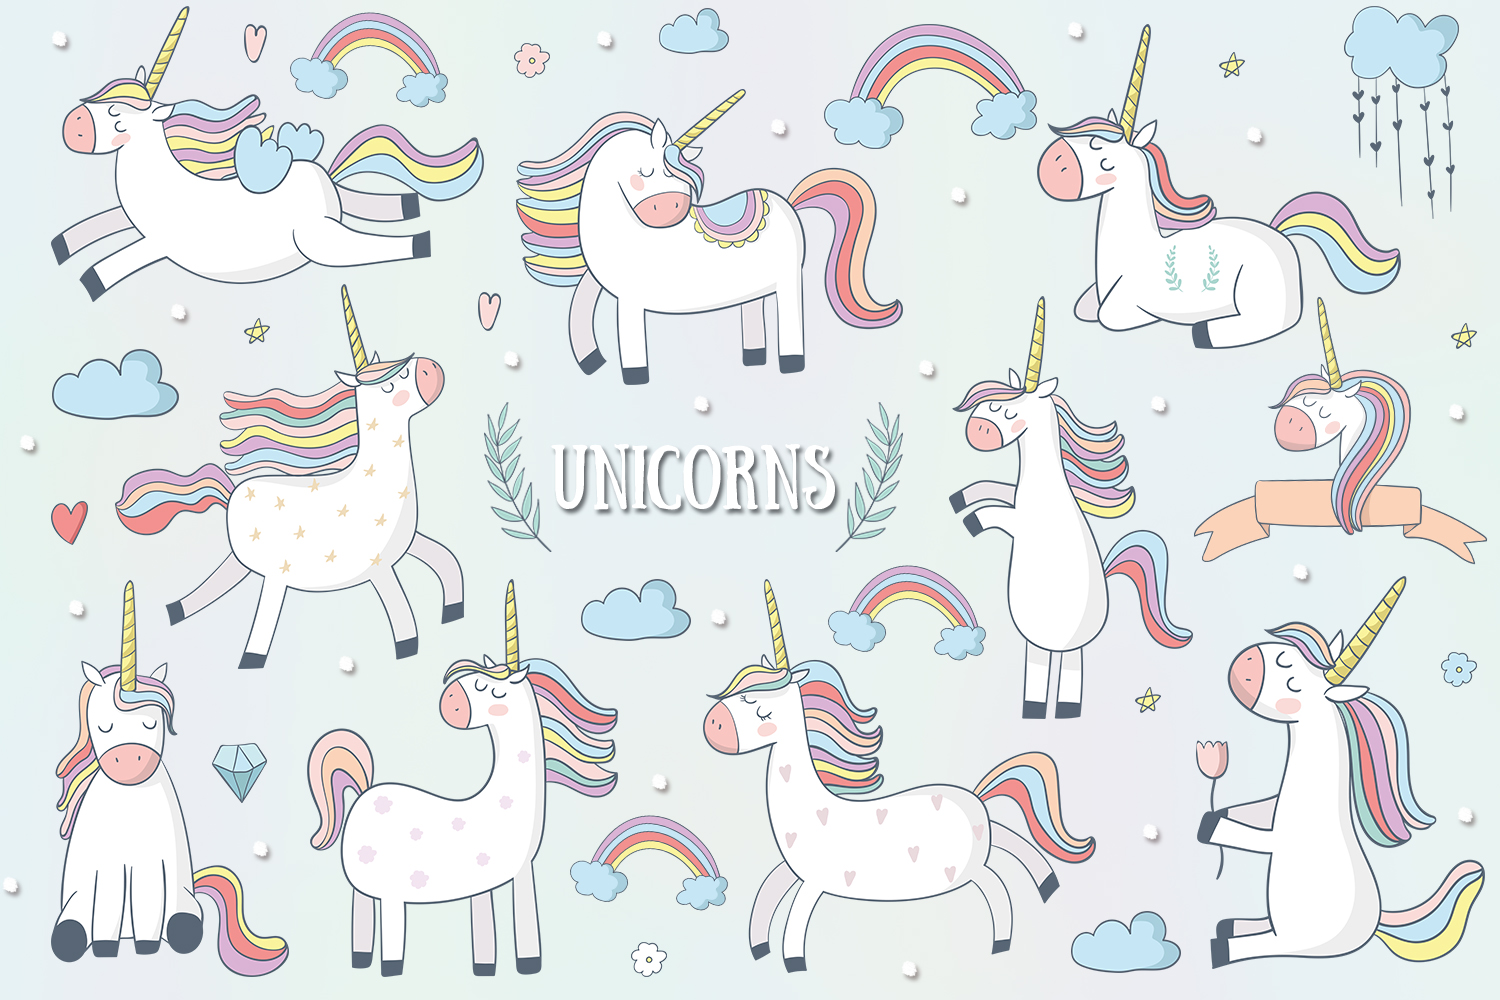 Unicorns example image 1